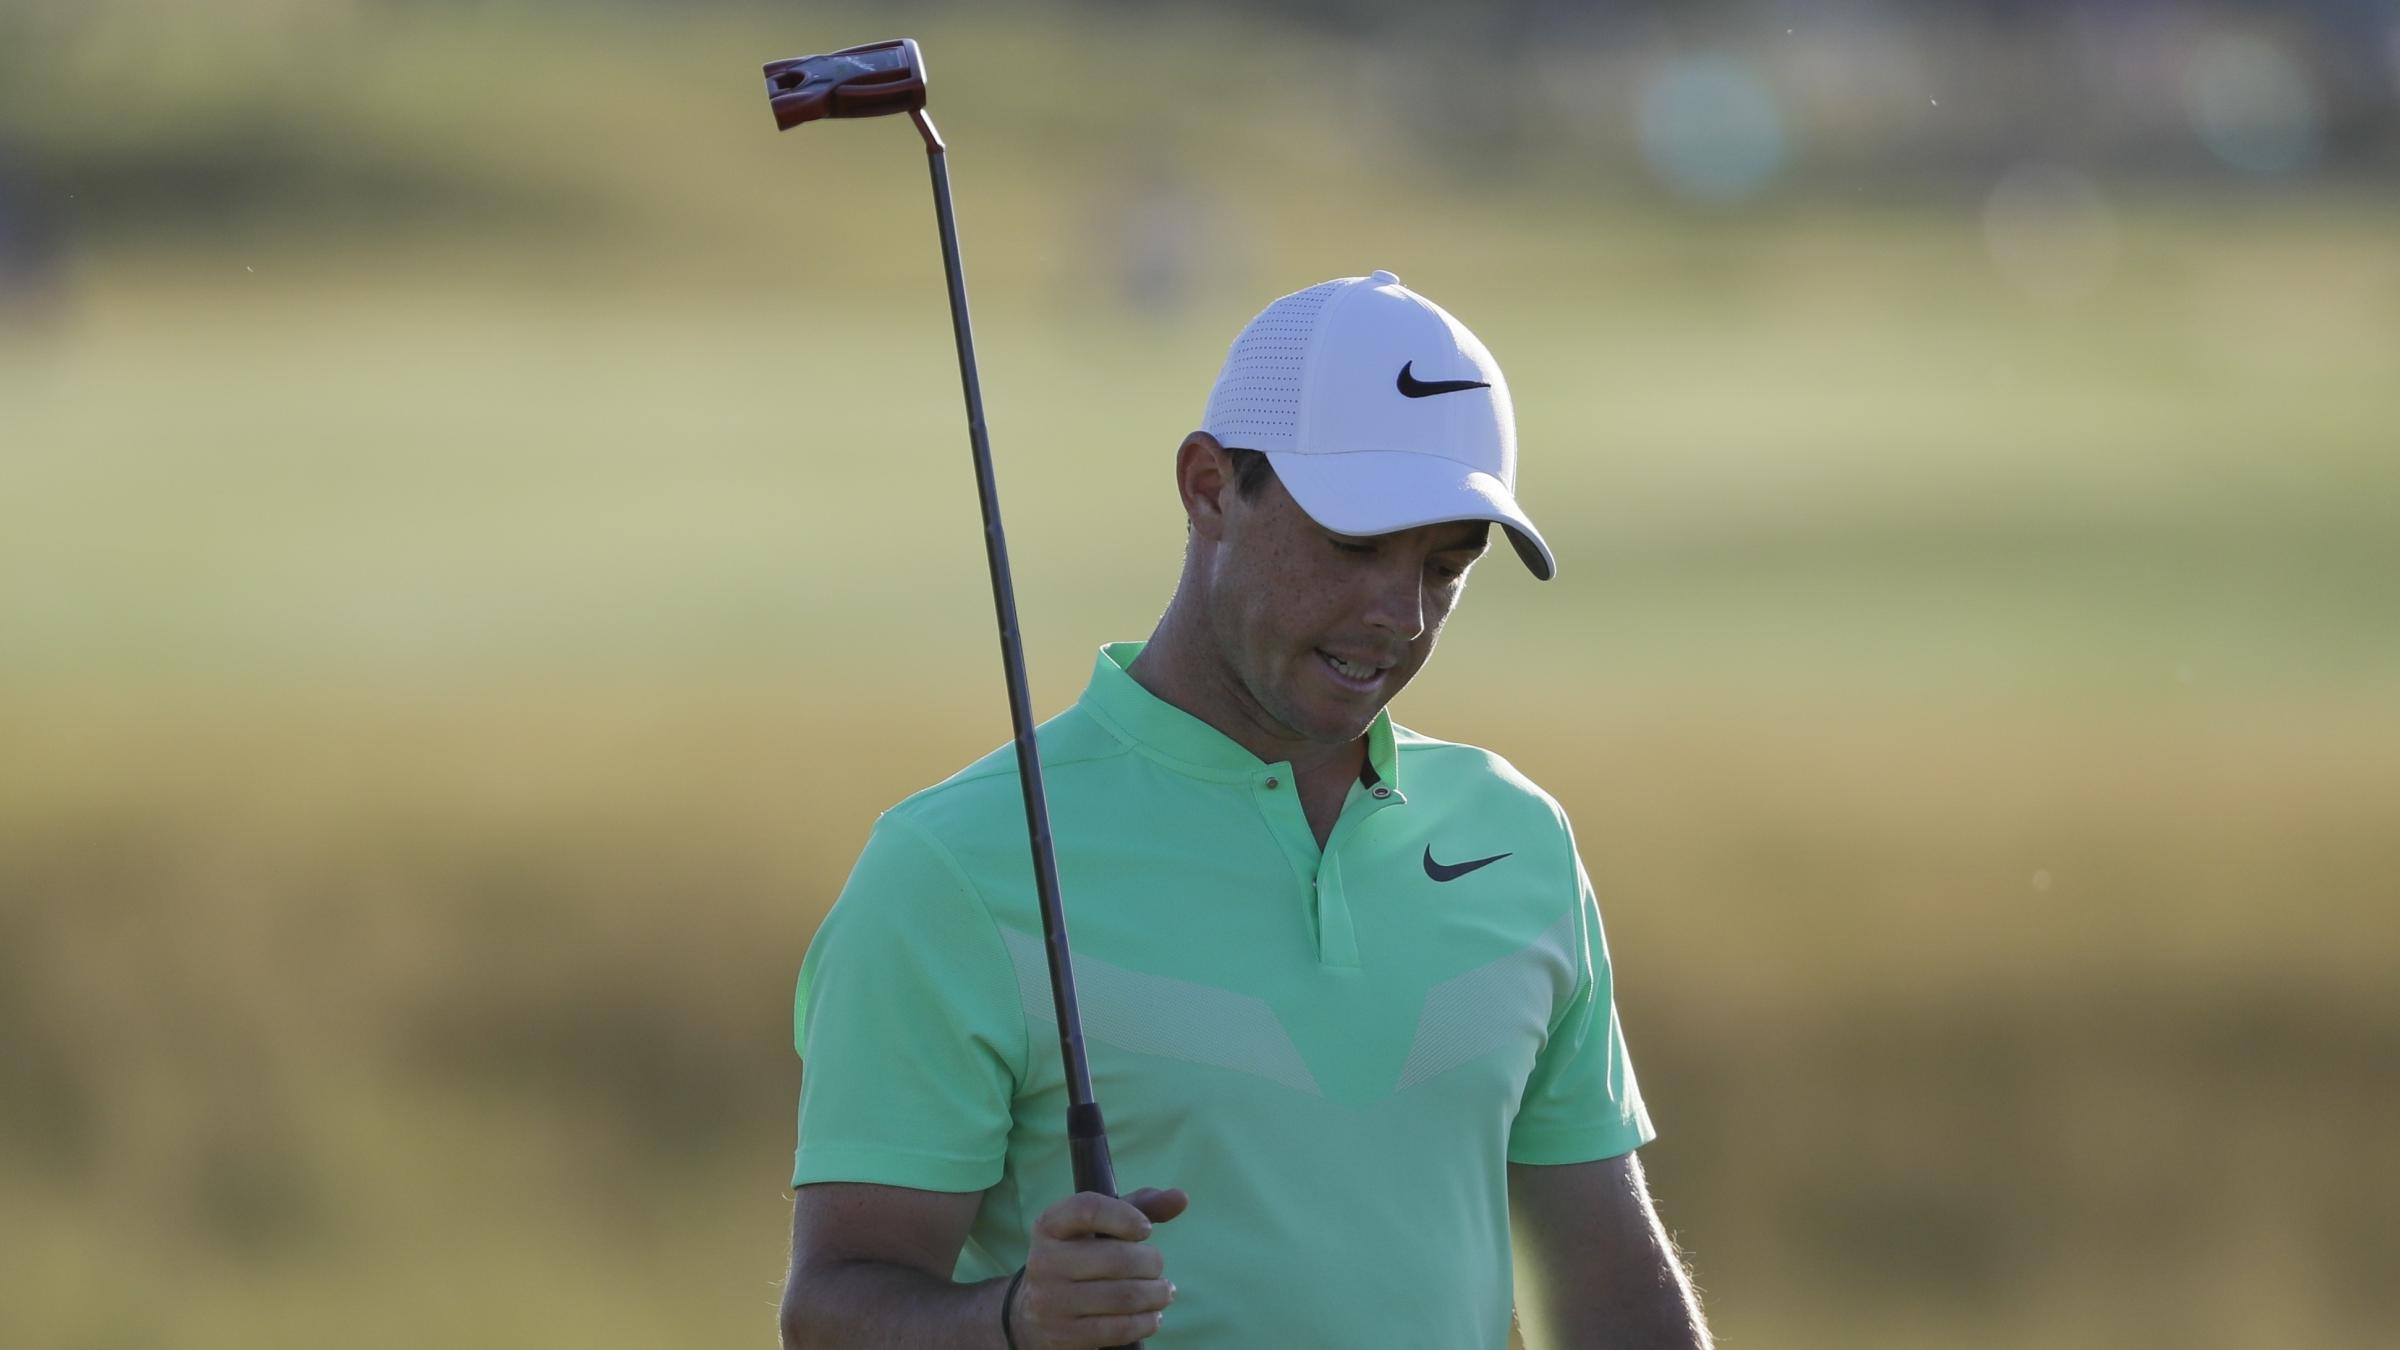 Rory McIlroy calls out Steve Elkington after 'bored' remark